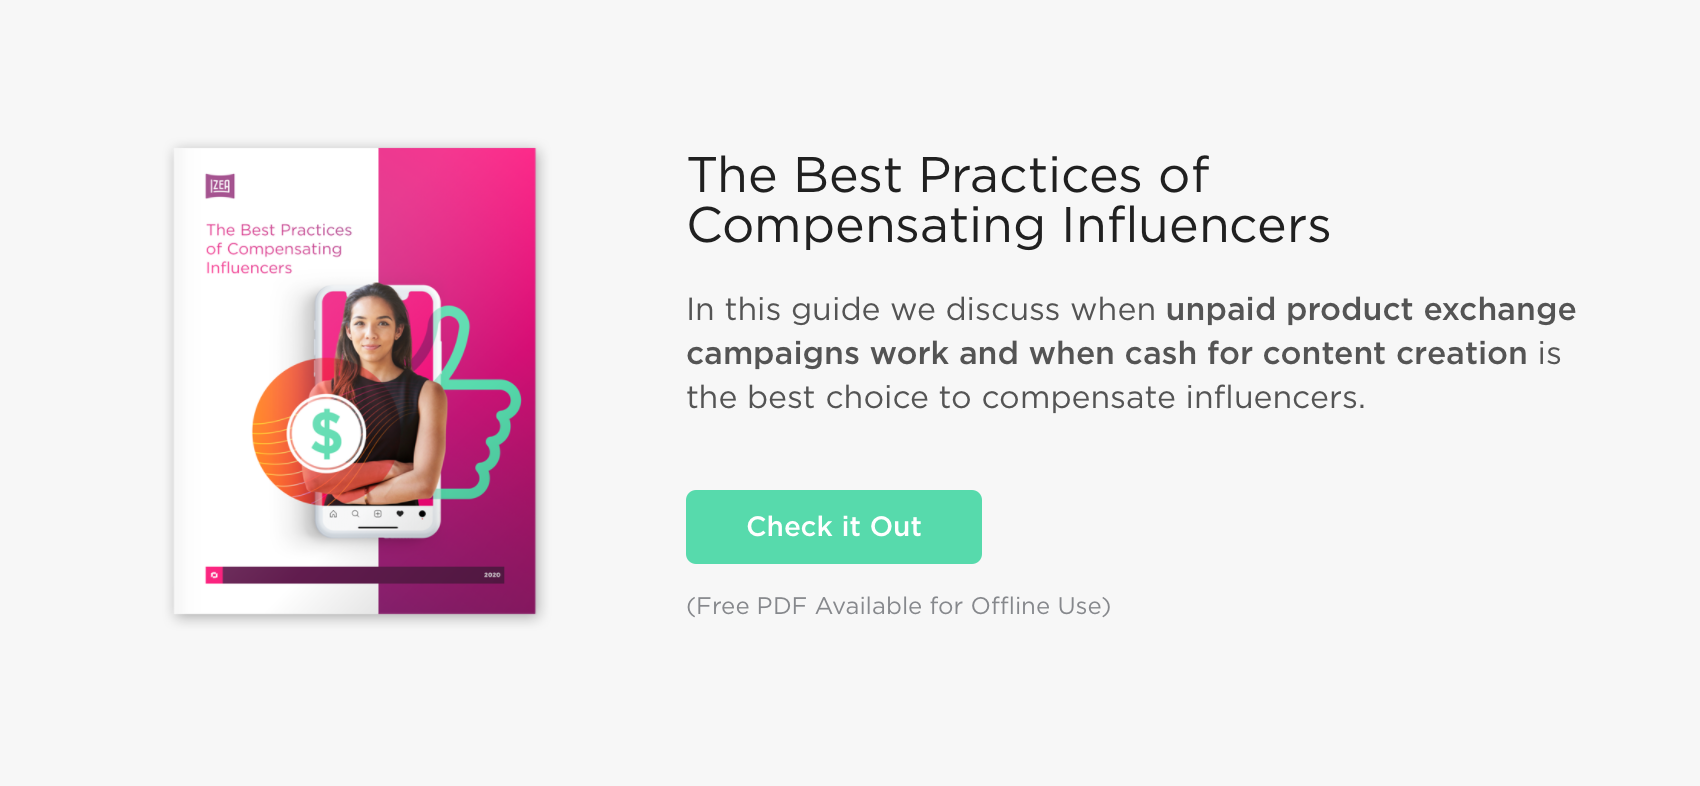 The Best Practices of Compensating Influencers